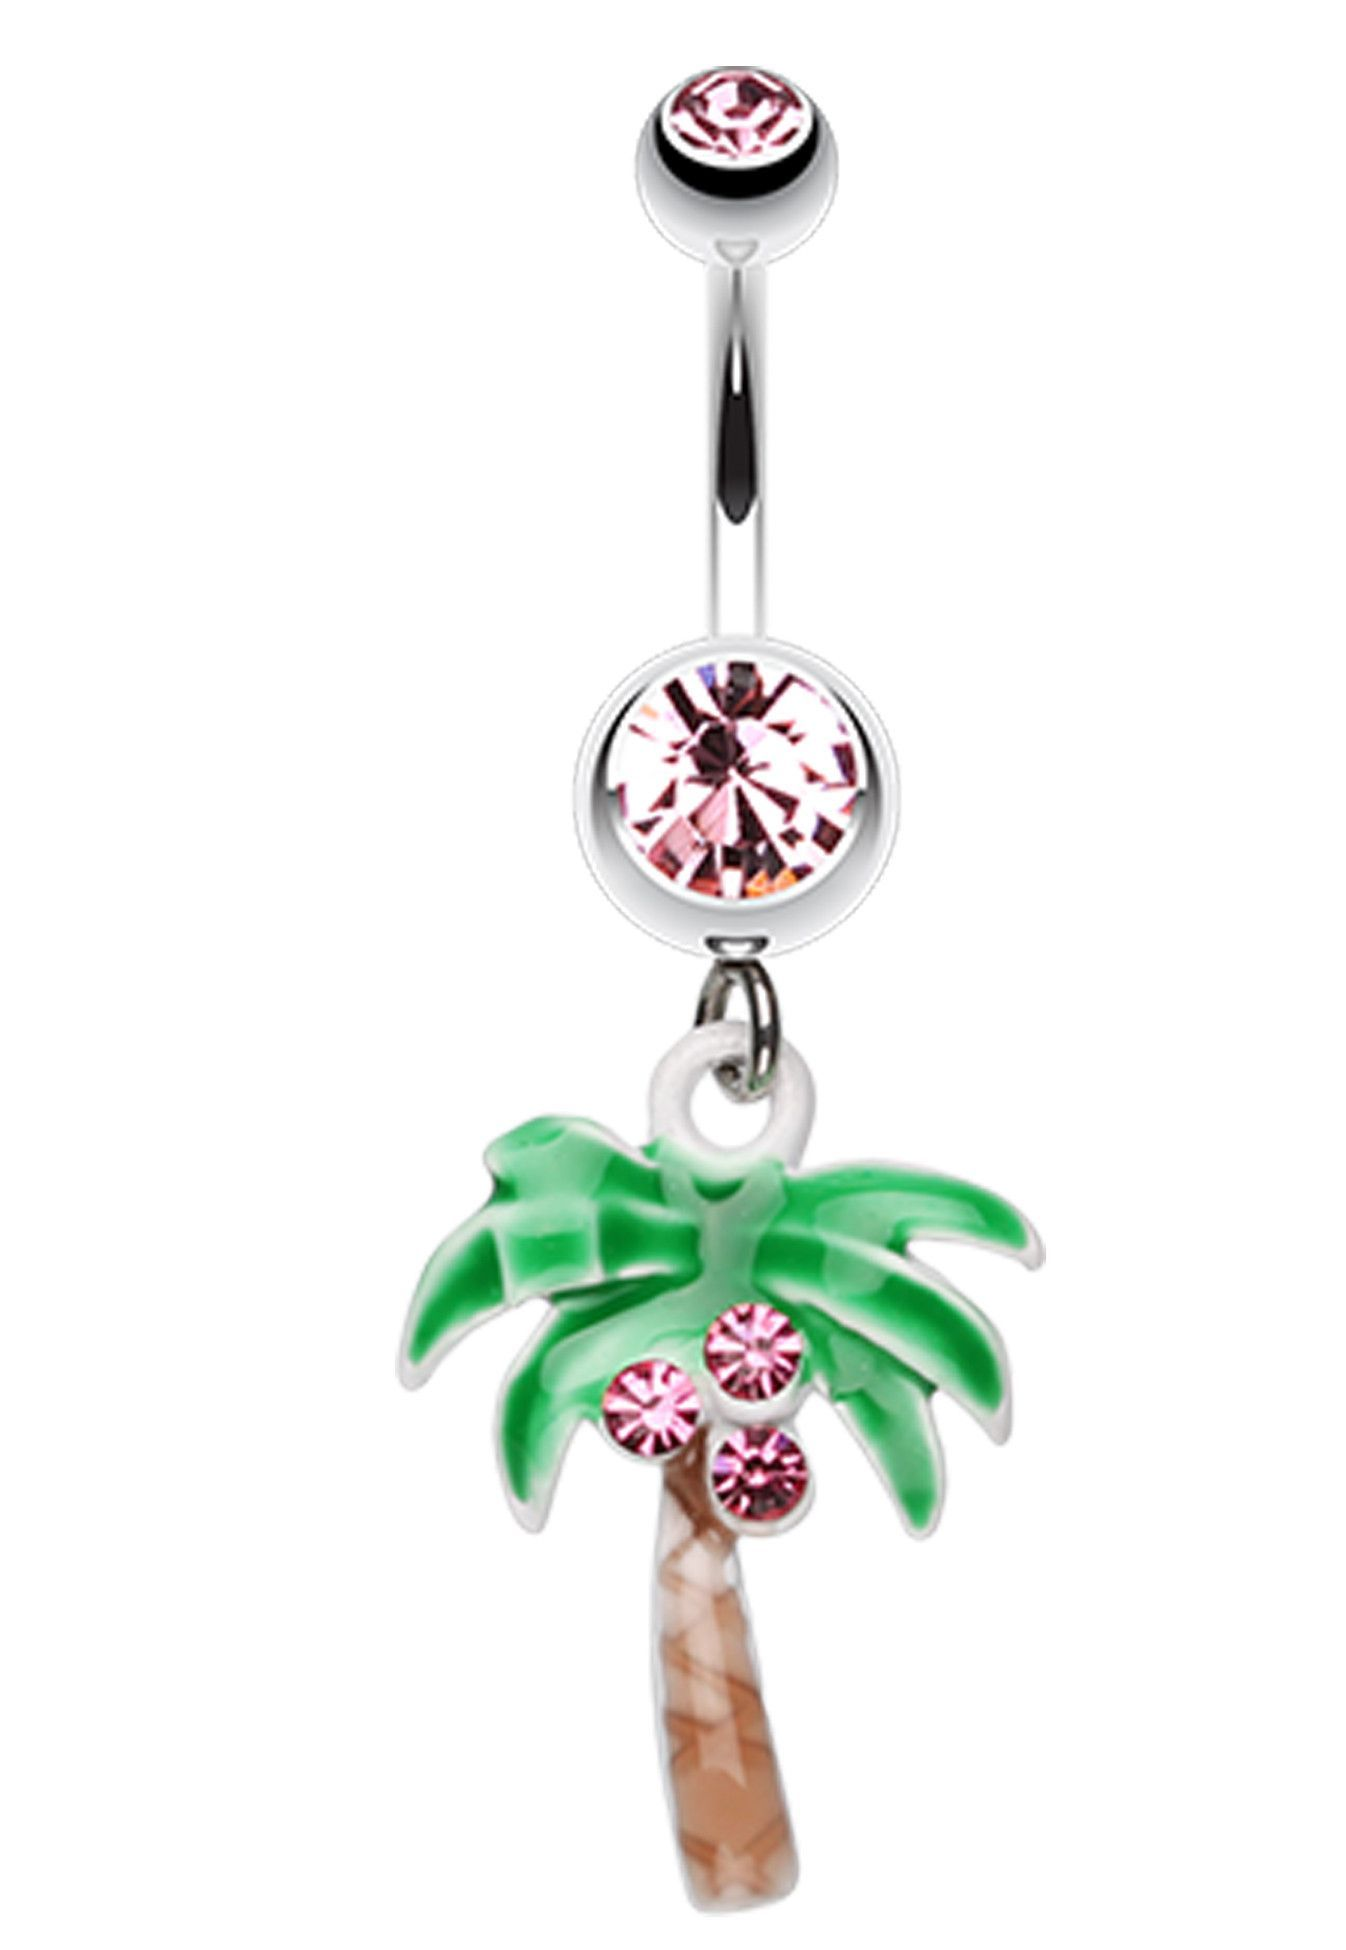 Piercing on belly  Jeweled Palm Tree Dangle Belly Button Ring  Belly button Dangles